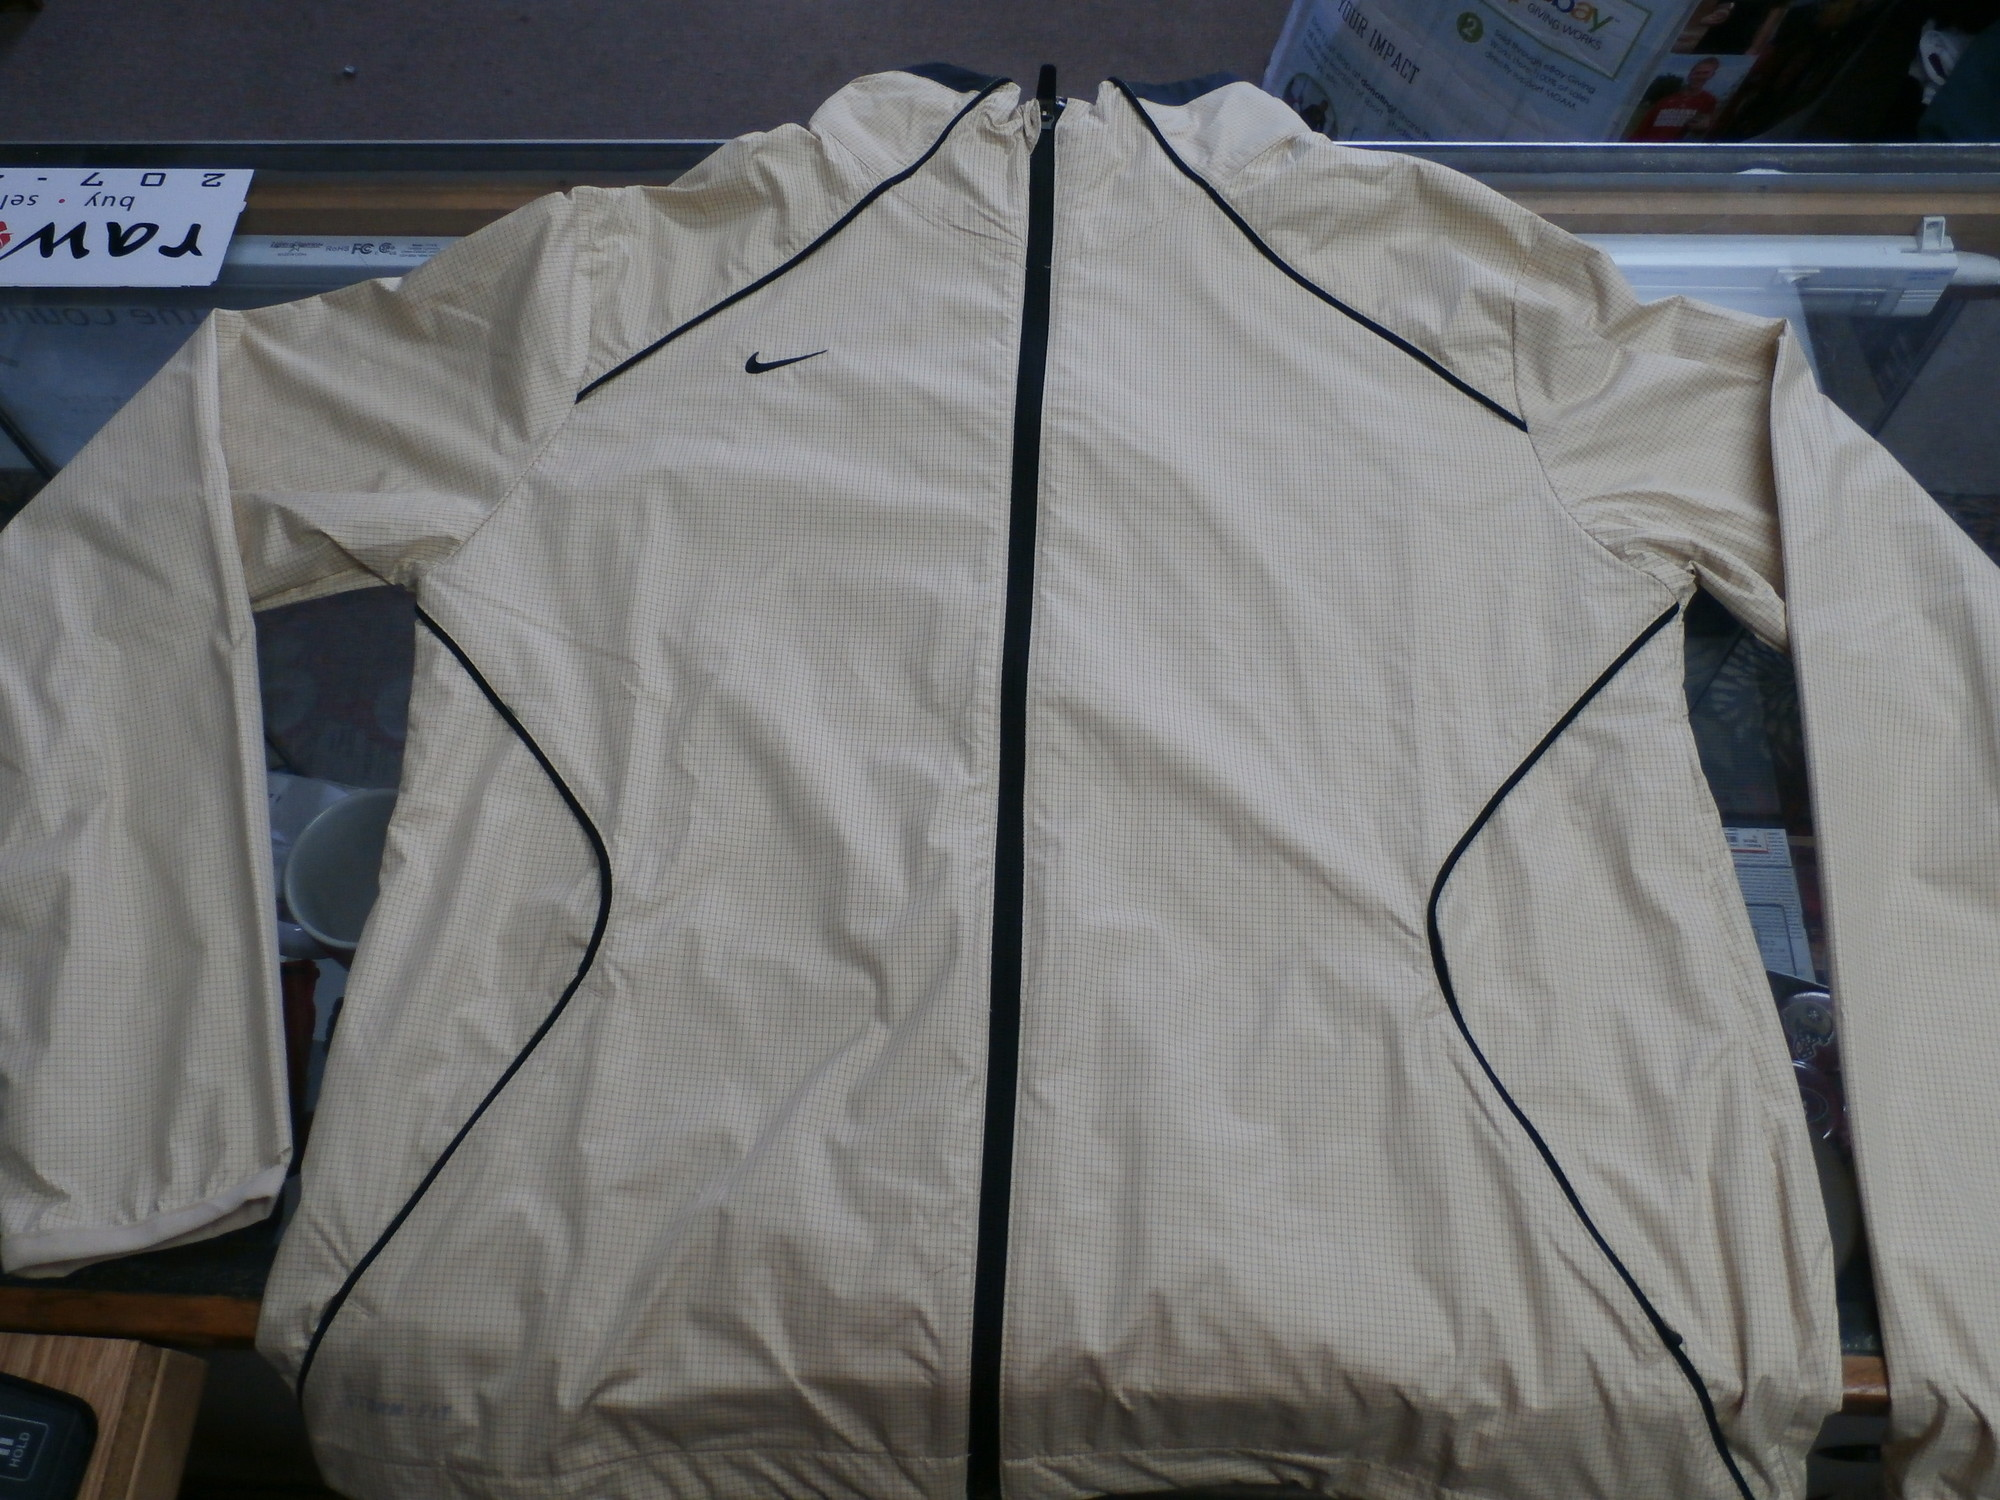 "Nike Storm-Fit Women's Jacket size Large Gold #32737<br /> Rating:   (see below) 2- Great Condition<br /> Team: N/A<br /> Player:  N/A<br /> Brand: Nike<br /> Size: Women's   Large(Measured Flat: across waist 21"", length 26"" )<br /> Measured flat: armpit to armpit; top of shoulder to the bottom hem<br /> Color: gold<br /> Style: long sleeve; full zip; jacket; has pockets ;<br /> Material:   100% polyester<br /> Condition: - 2- Great Condition - wrinkled; minimal flaws;<br /> Item #: 32737<br /> Shipping: FREE"